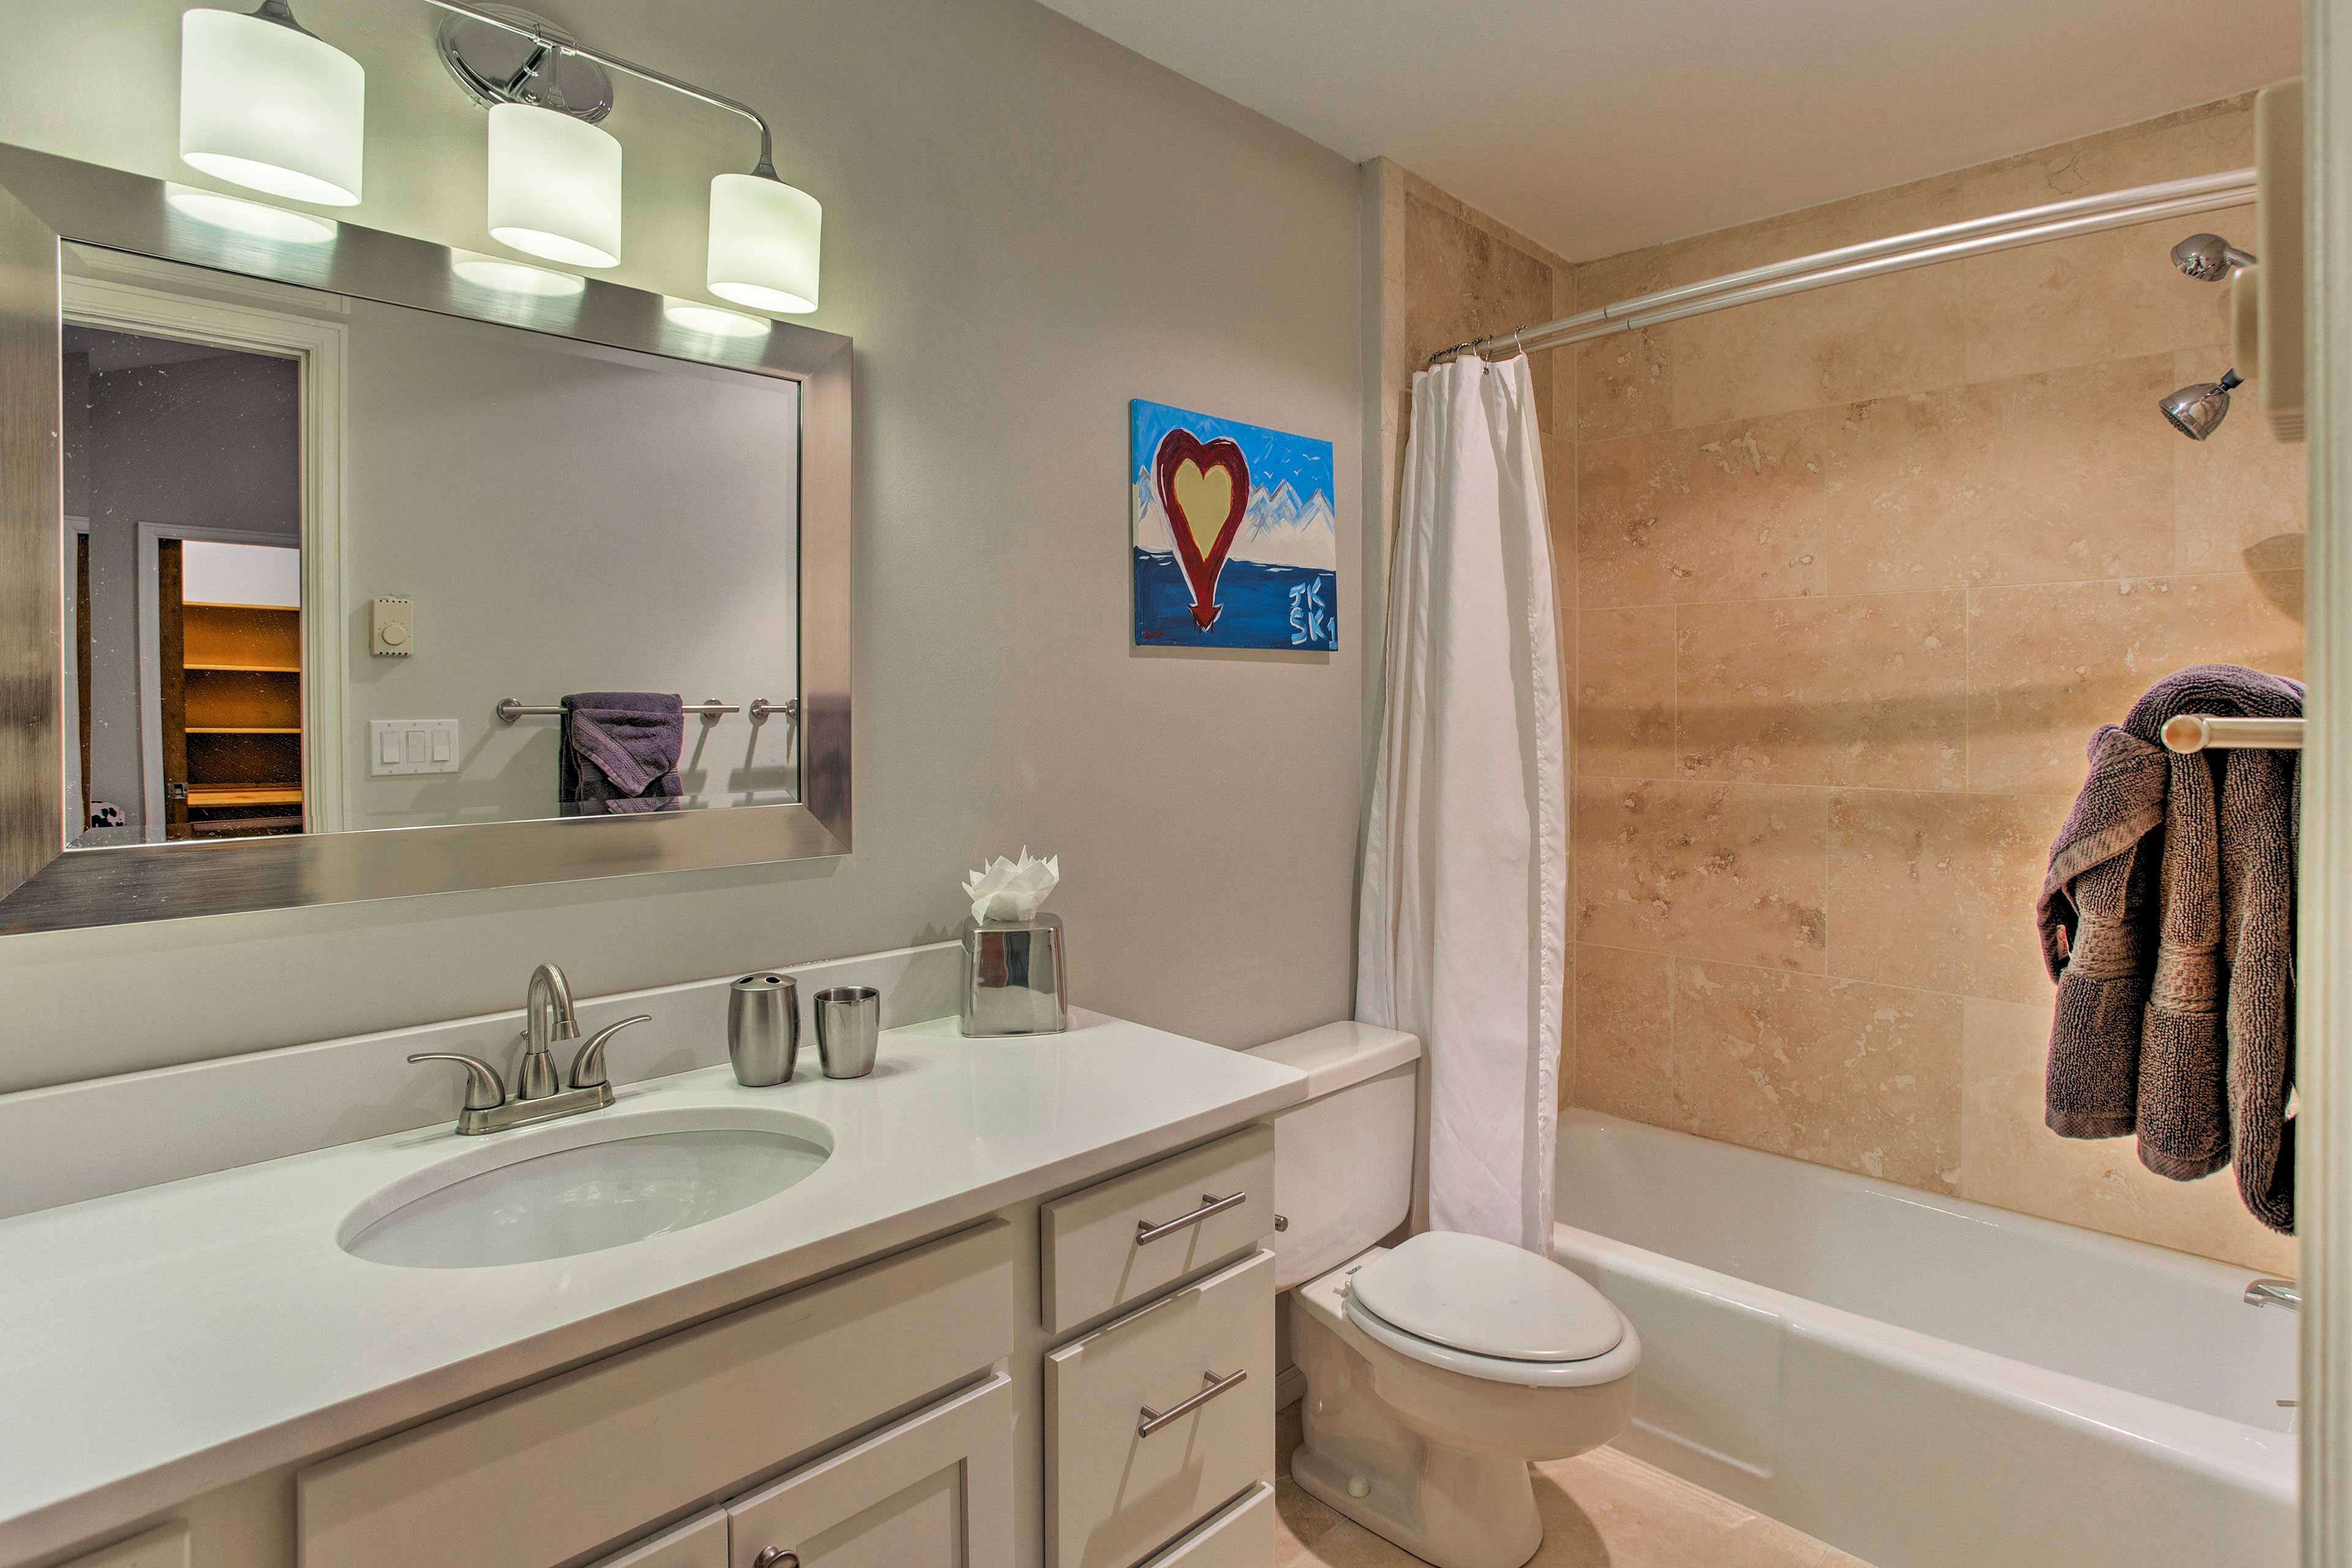 A third and final full bathroom provides additional privacy.